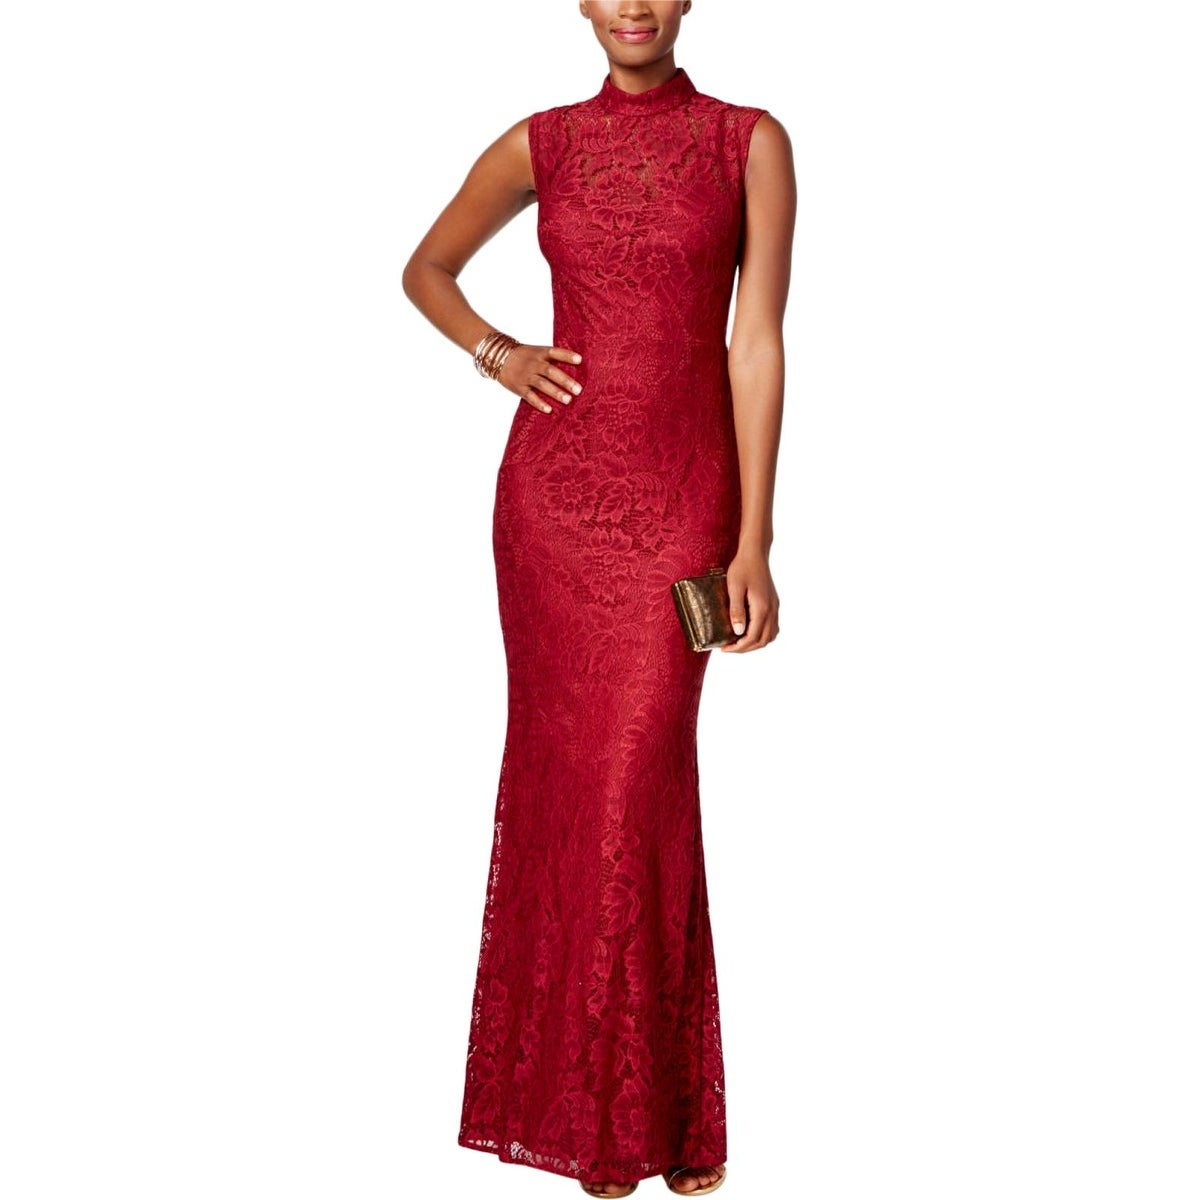 91fe7189bc76 Formal Long Dresses Dillards - raveitsafe